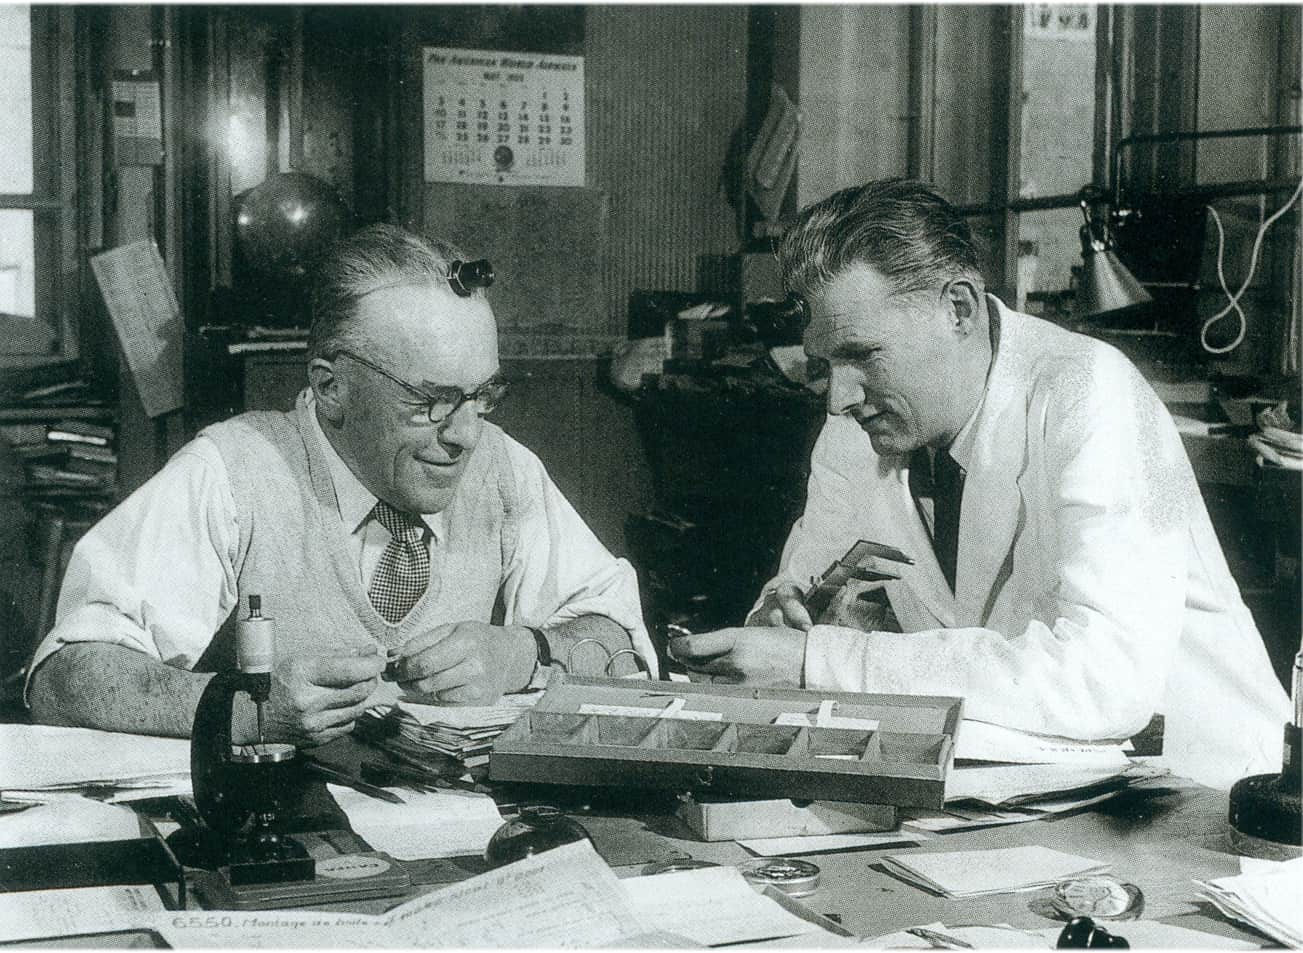 Paul-Edward Piguet und Jacques-Louis Audemars in den 1950-er Jahren